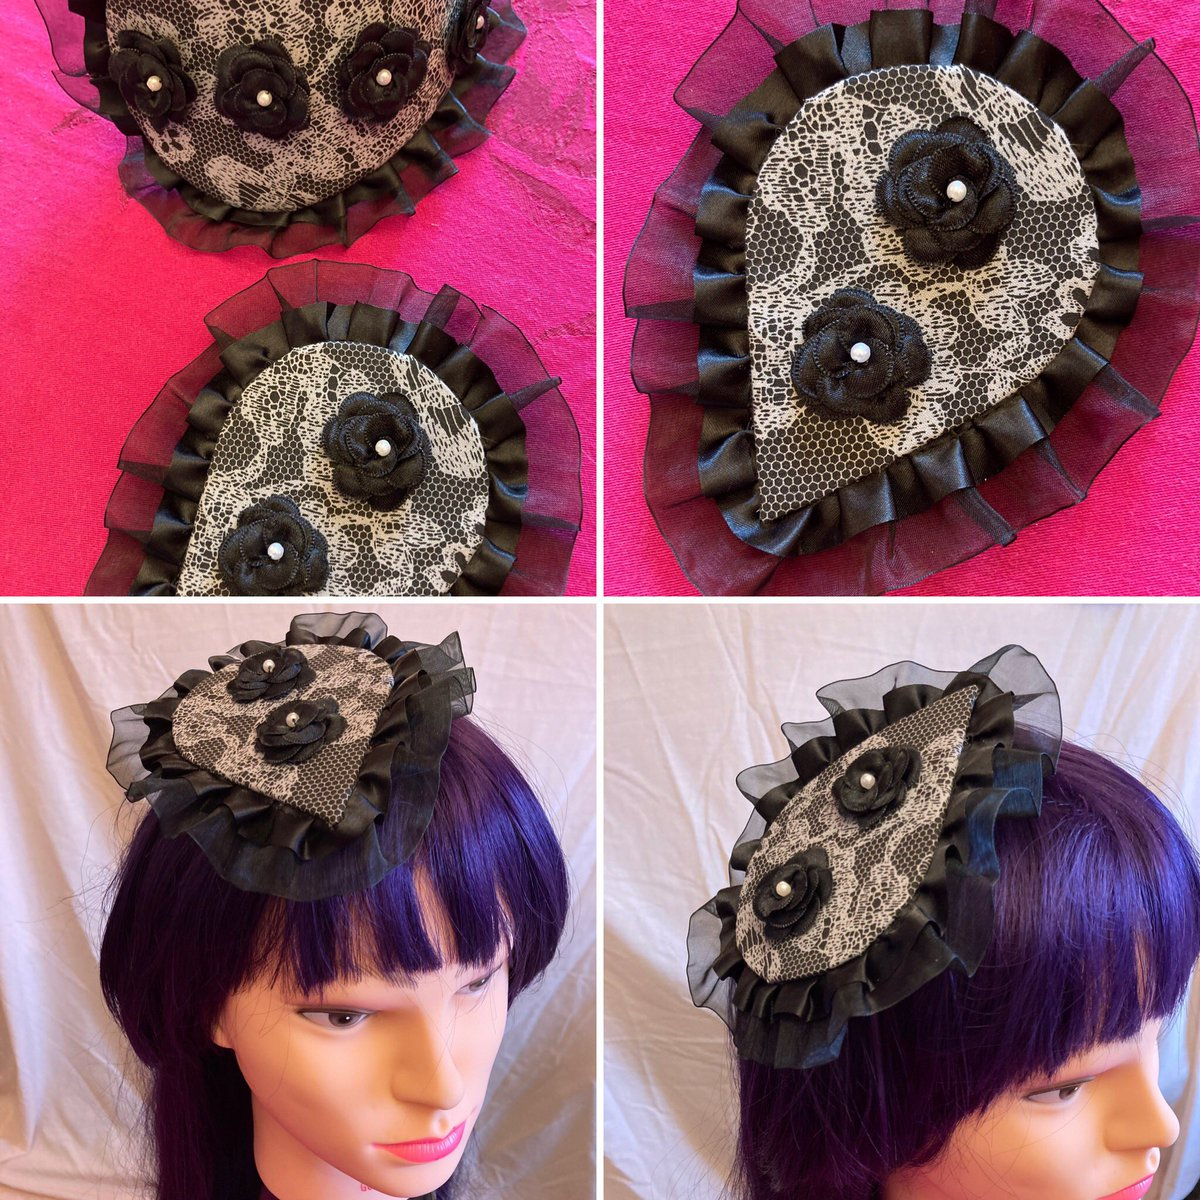 Made today! Mini fascinator to match yesterday's. A mother/daughter set. Both very cute and stylish #fascinators #millinery #goth #halloween #eyes #googlyeyes #createdtoday #homemade #craftpic.twitter.com/1MmLKRR5yU